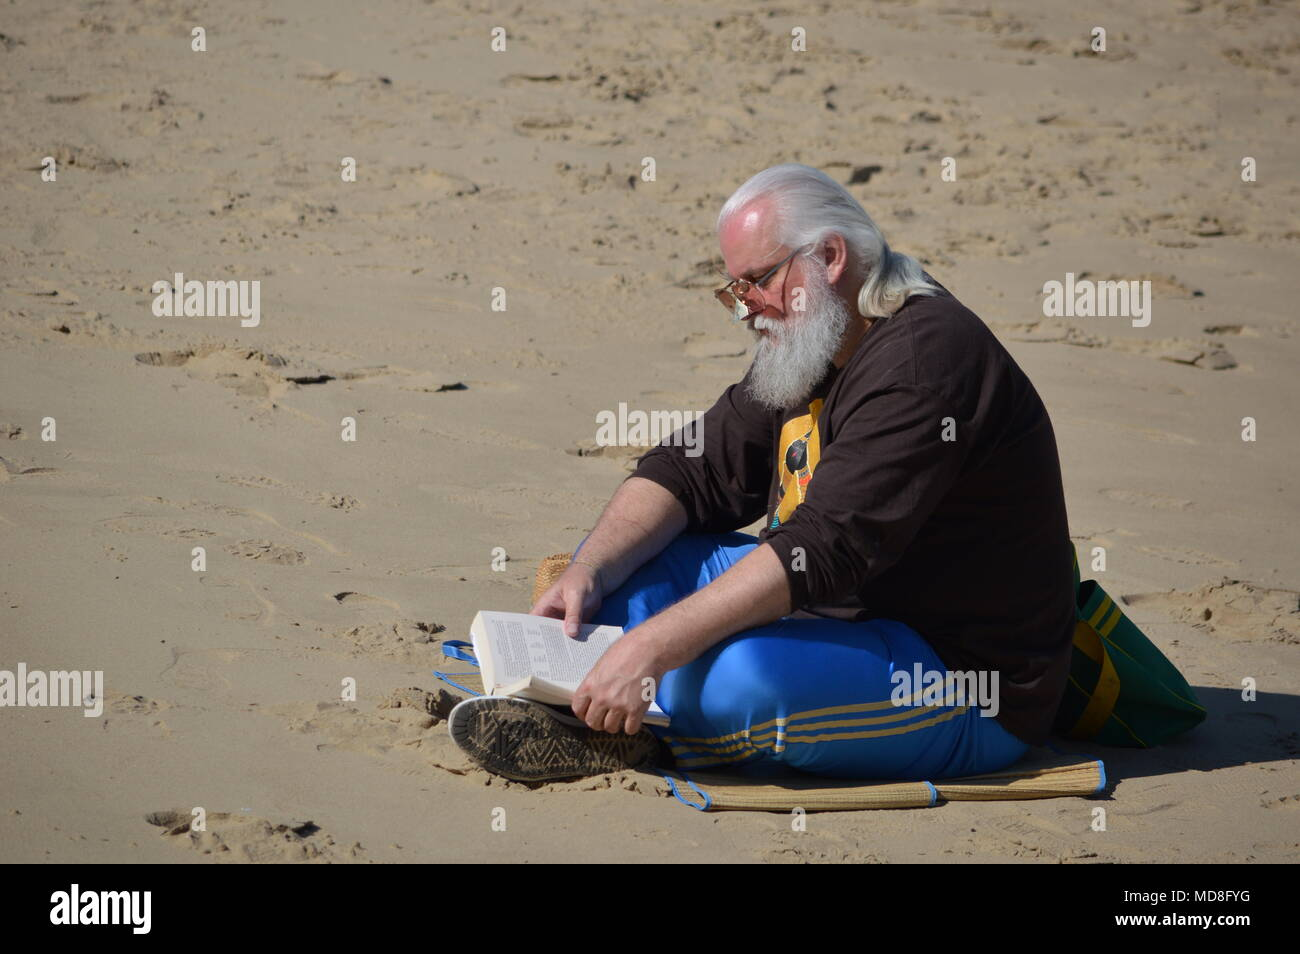 A man reading a book on the bank of the River Thames at Southbank, London - Stock Image